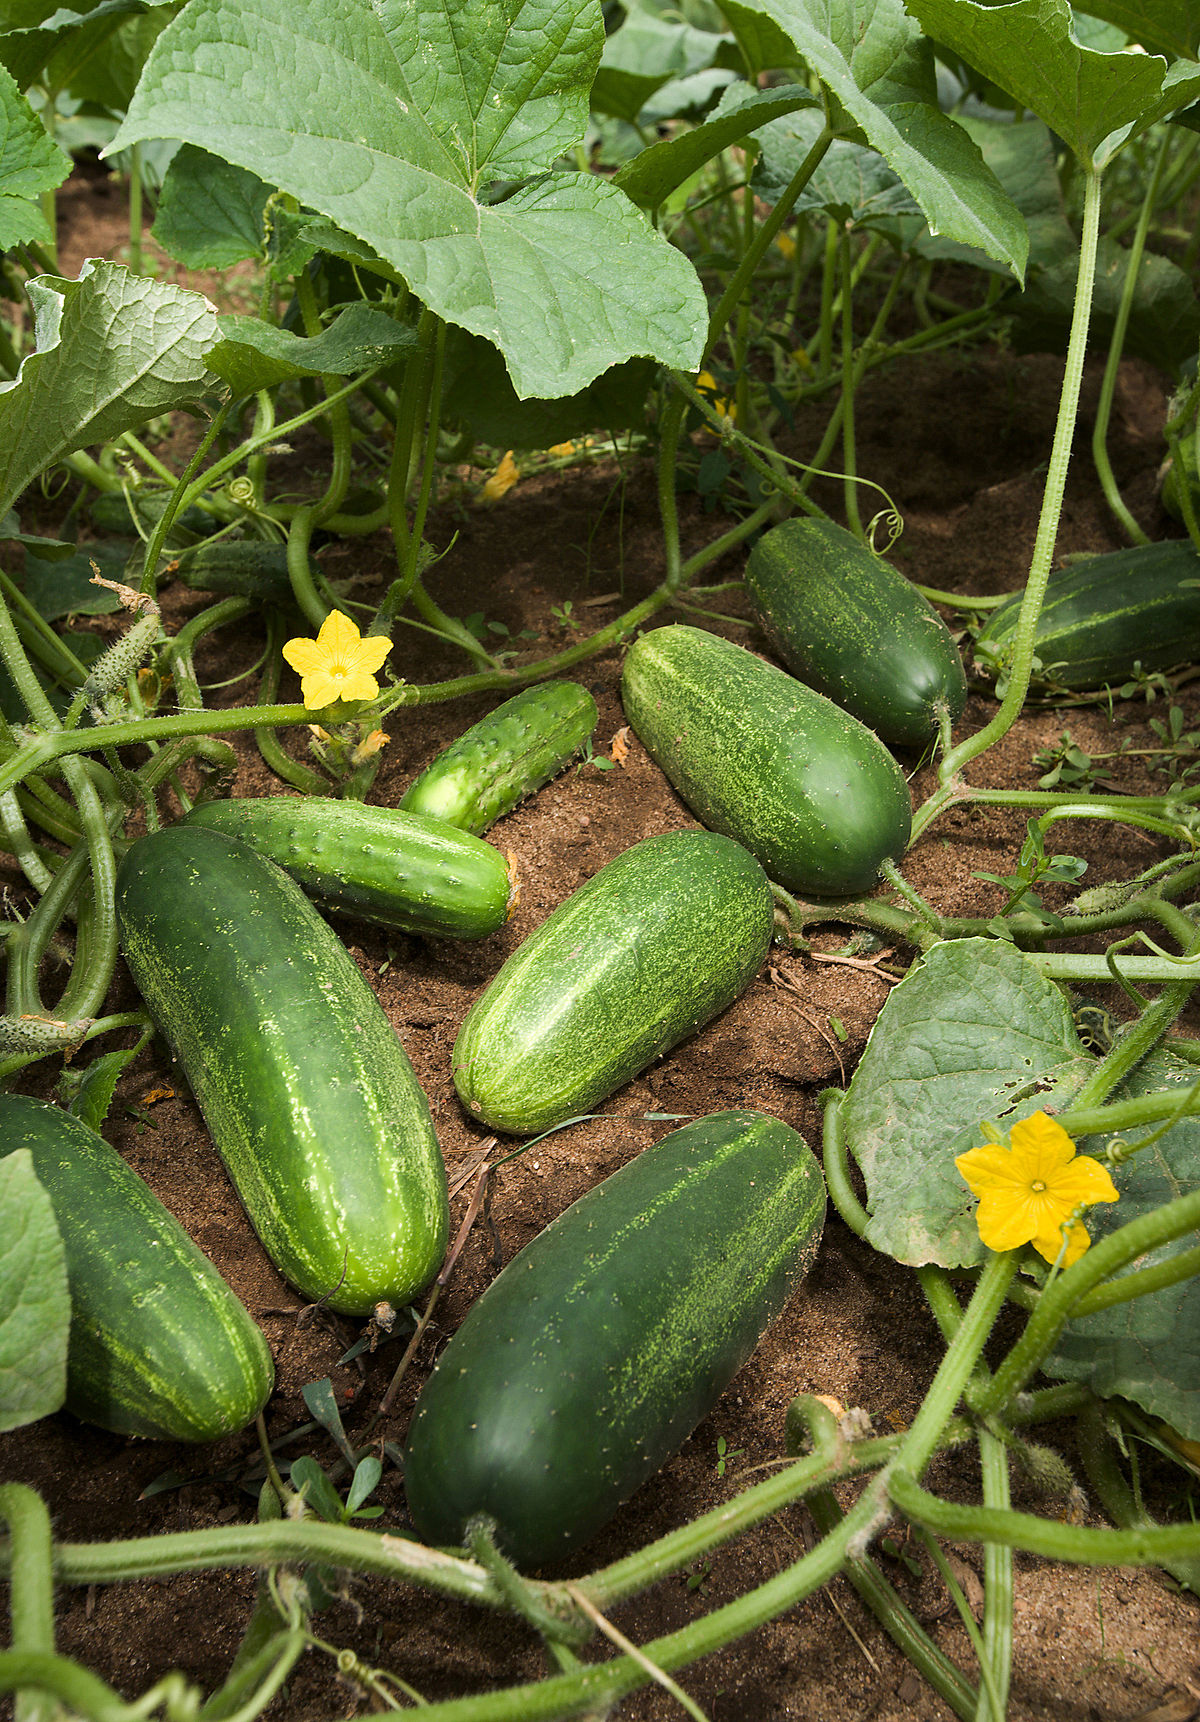 Cucumber fruit in plant photos